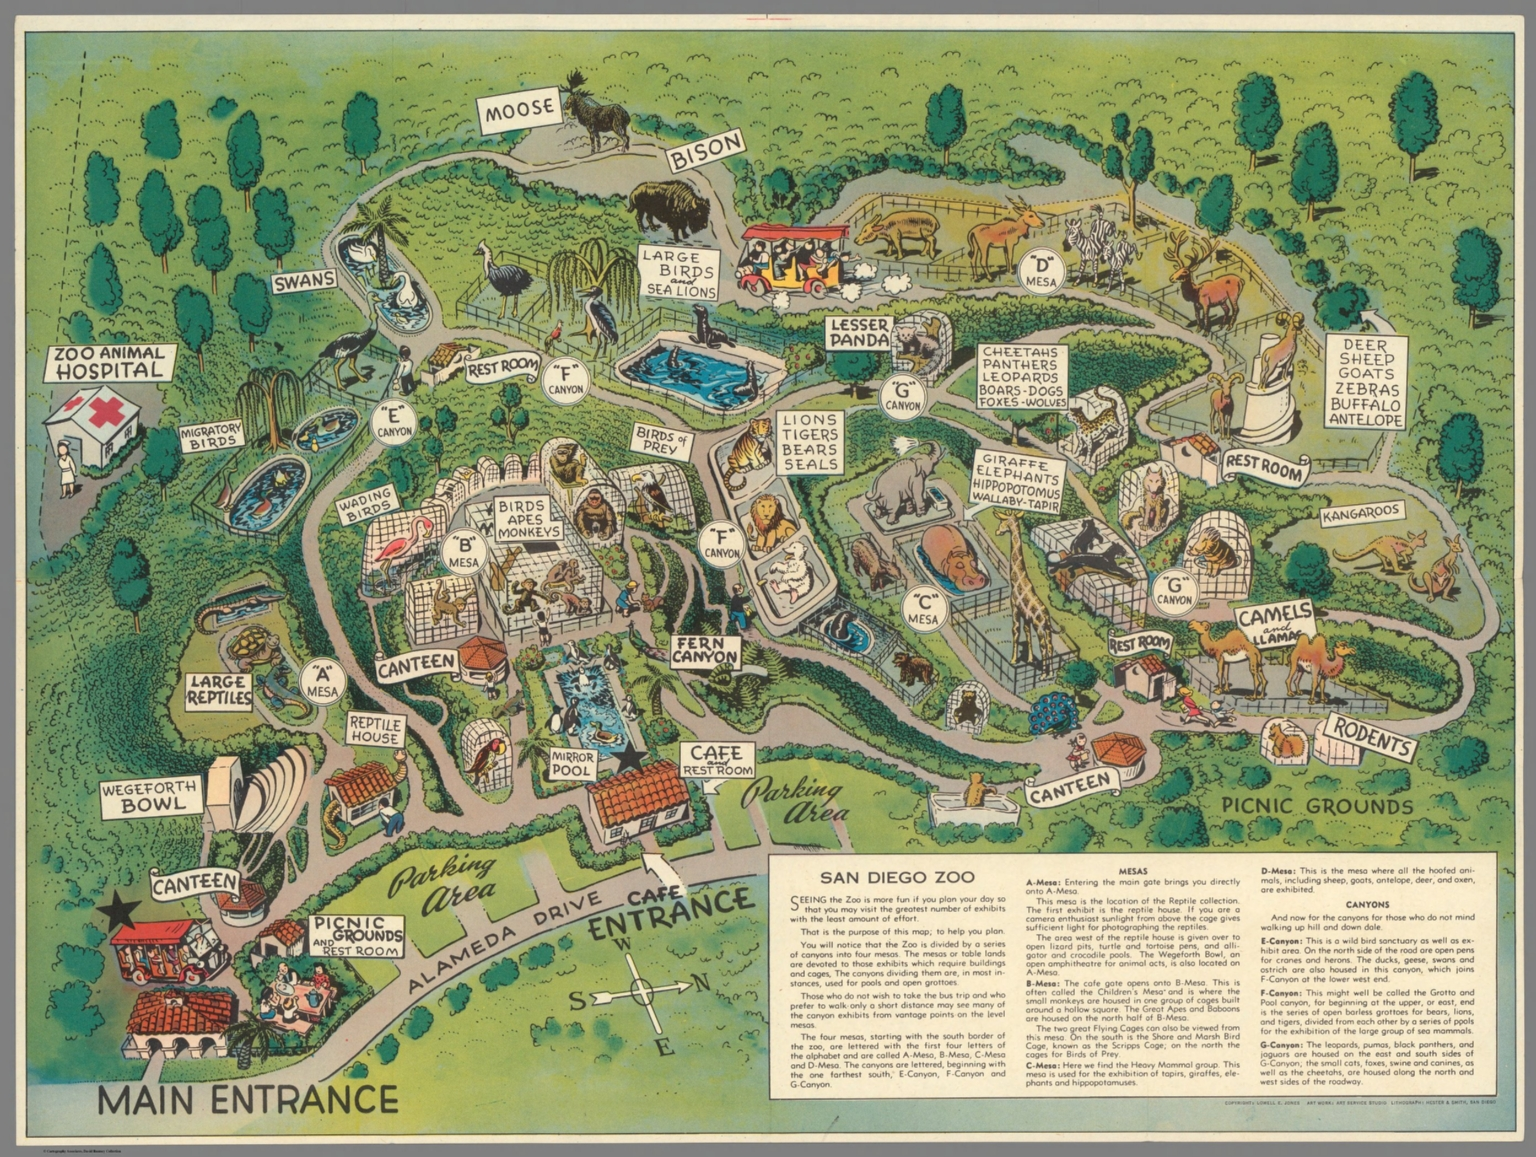 San Diego Zoo David Rumsey Historical Map Collection - San diego zoo map